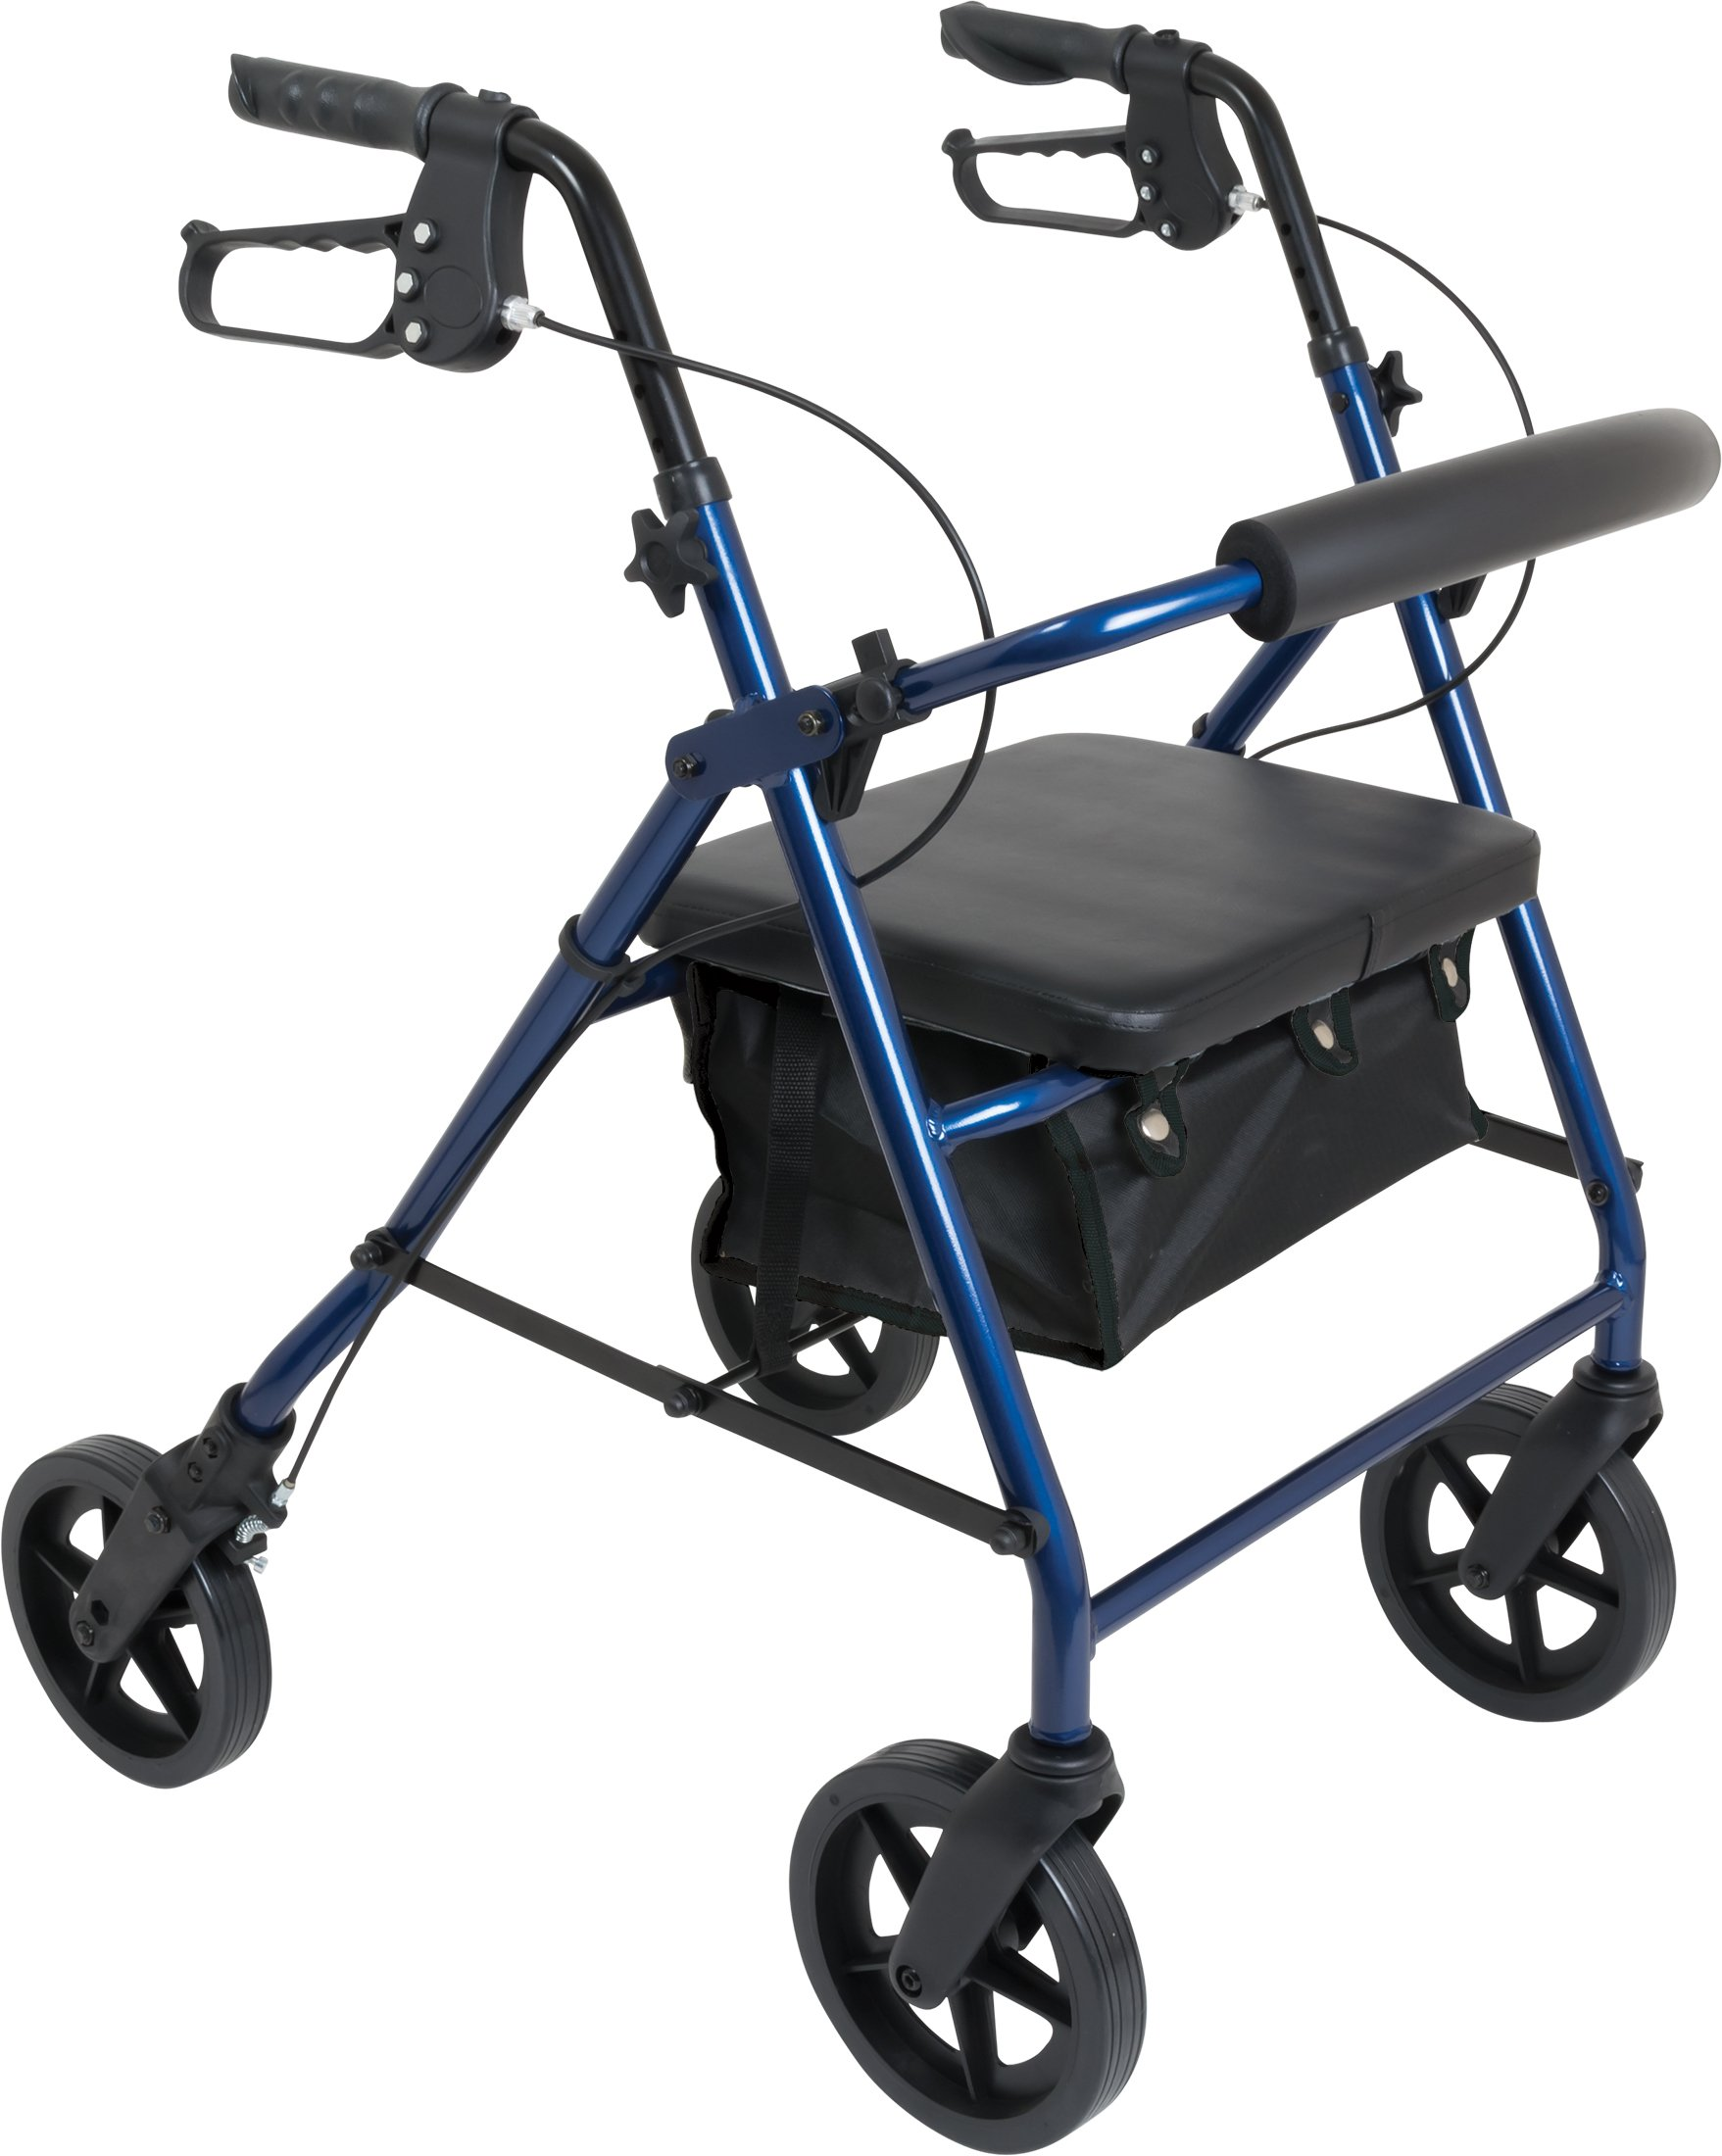 ProBasics 4 Wheel Medical Rolling Walker with Wheels, Seat, Backrest and Storage Pouch - Rollator Walker for Seniors- Durable Aluminum Frame Supports up to 300 lbs, 8-inch Wheels, Blue by Roscoe Medical